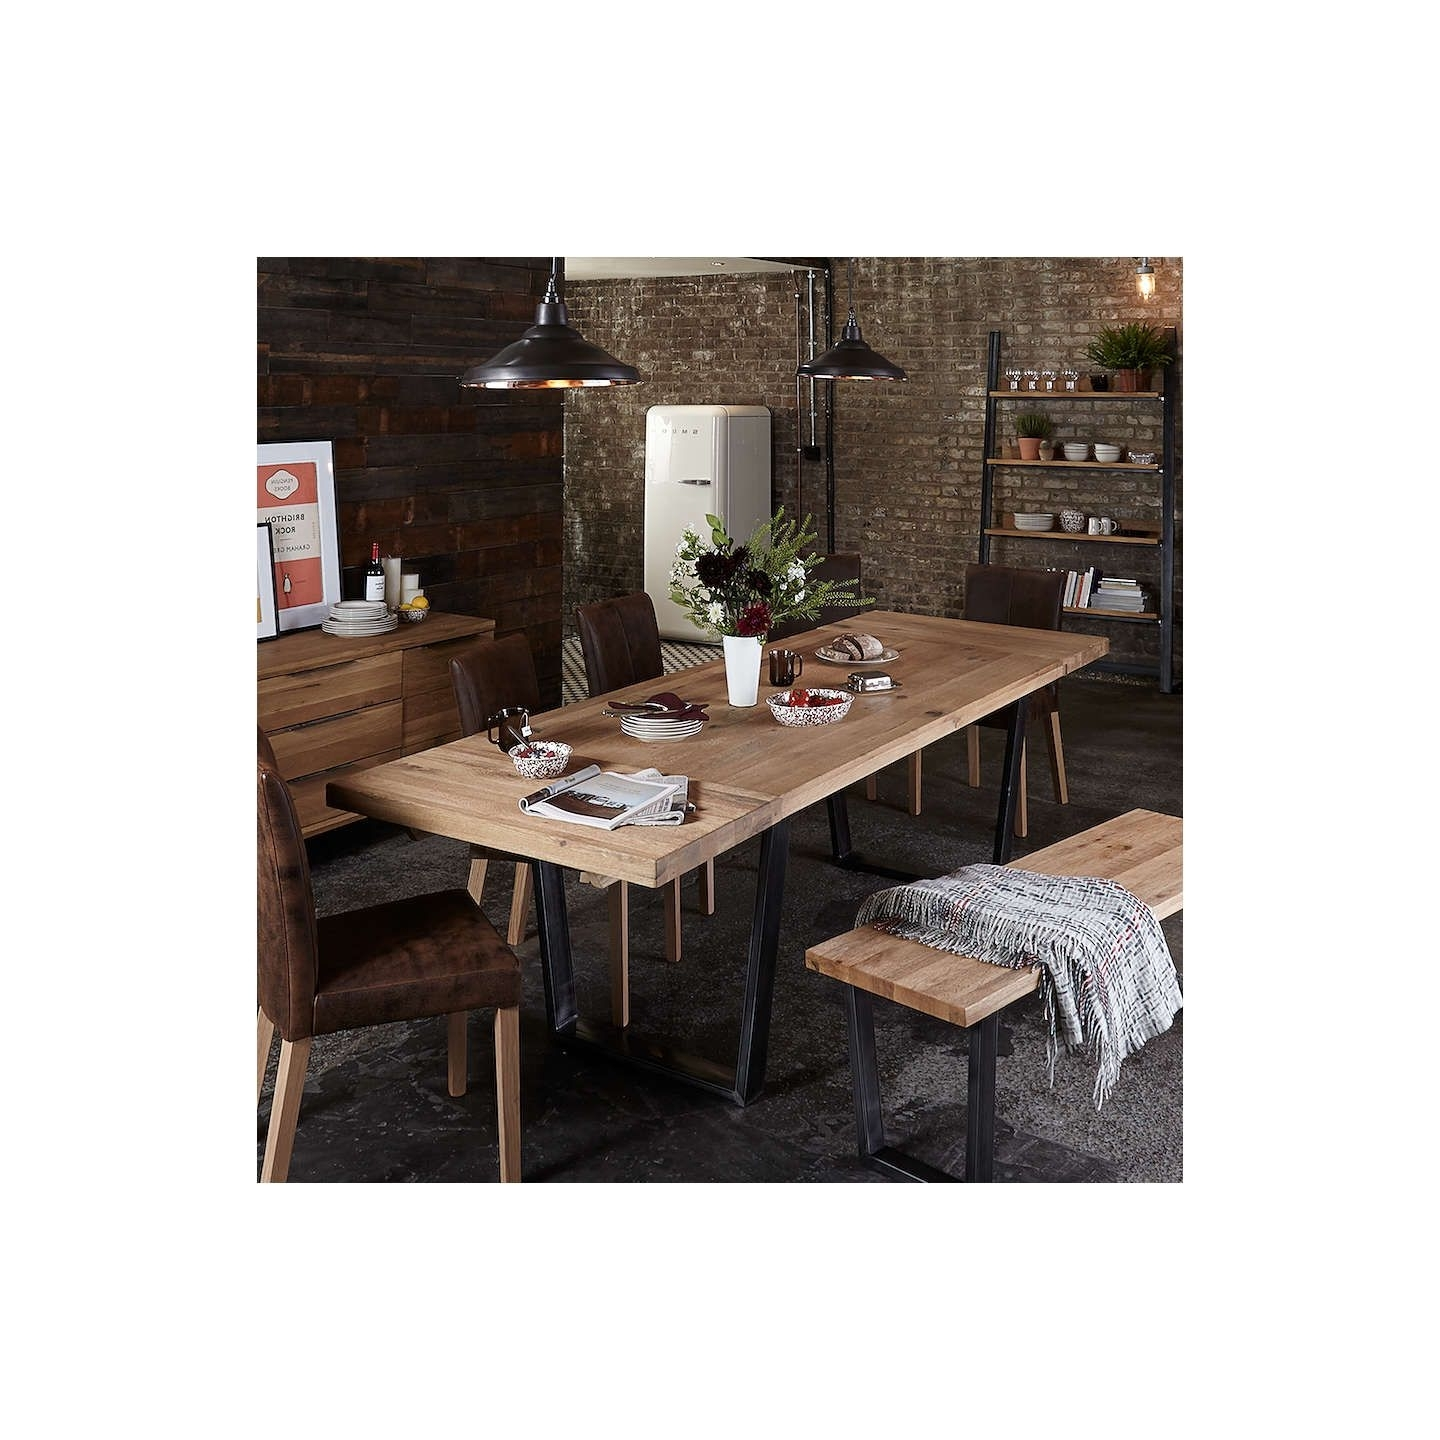 John Lewis & Partners Calia 8 12 Seater Extending Dining Table, Oak Throughout Best And Newest Extendable Dining Tables With 8 Seats (View 22 of 25)